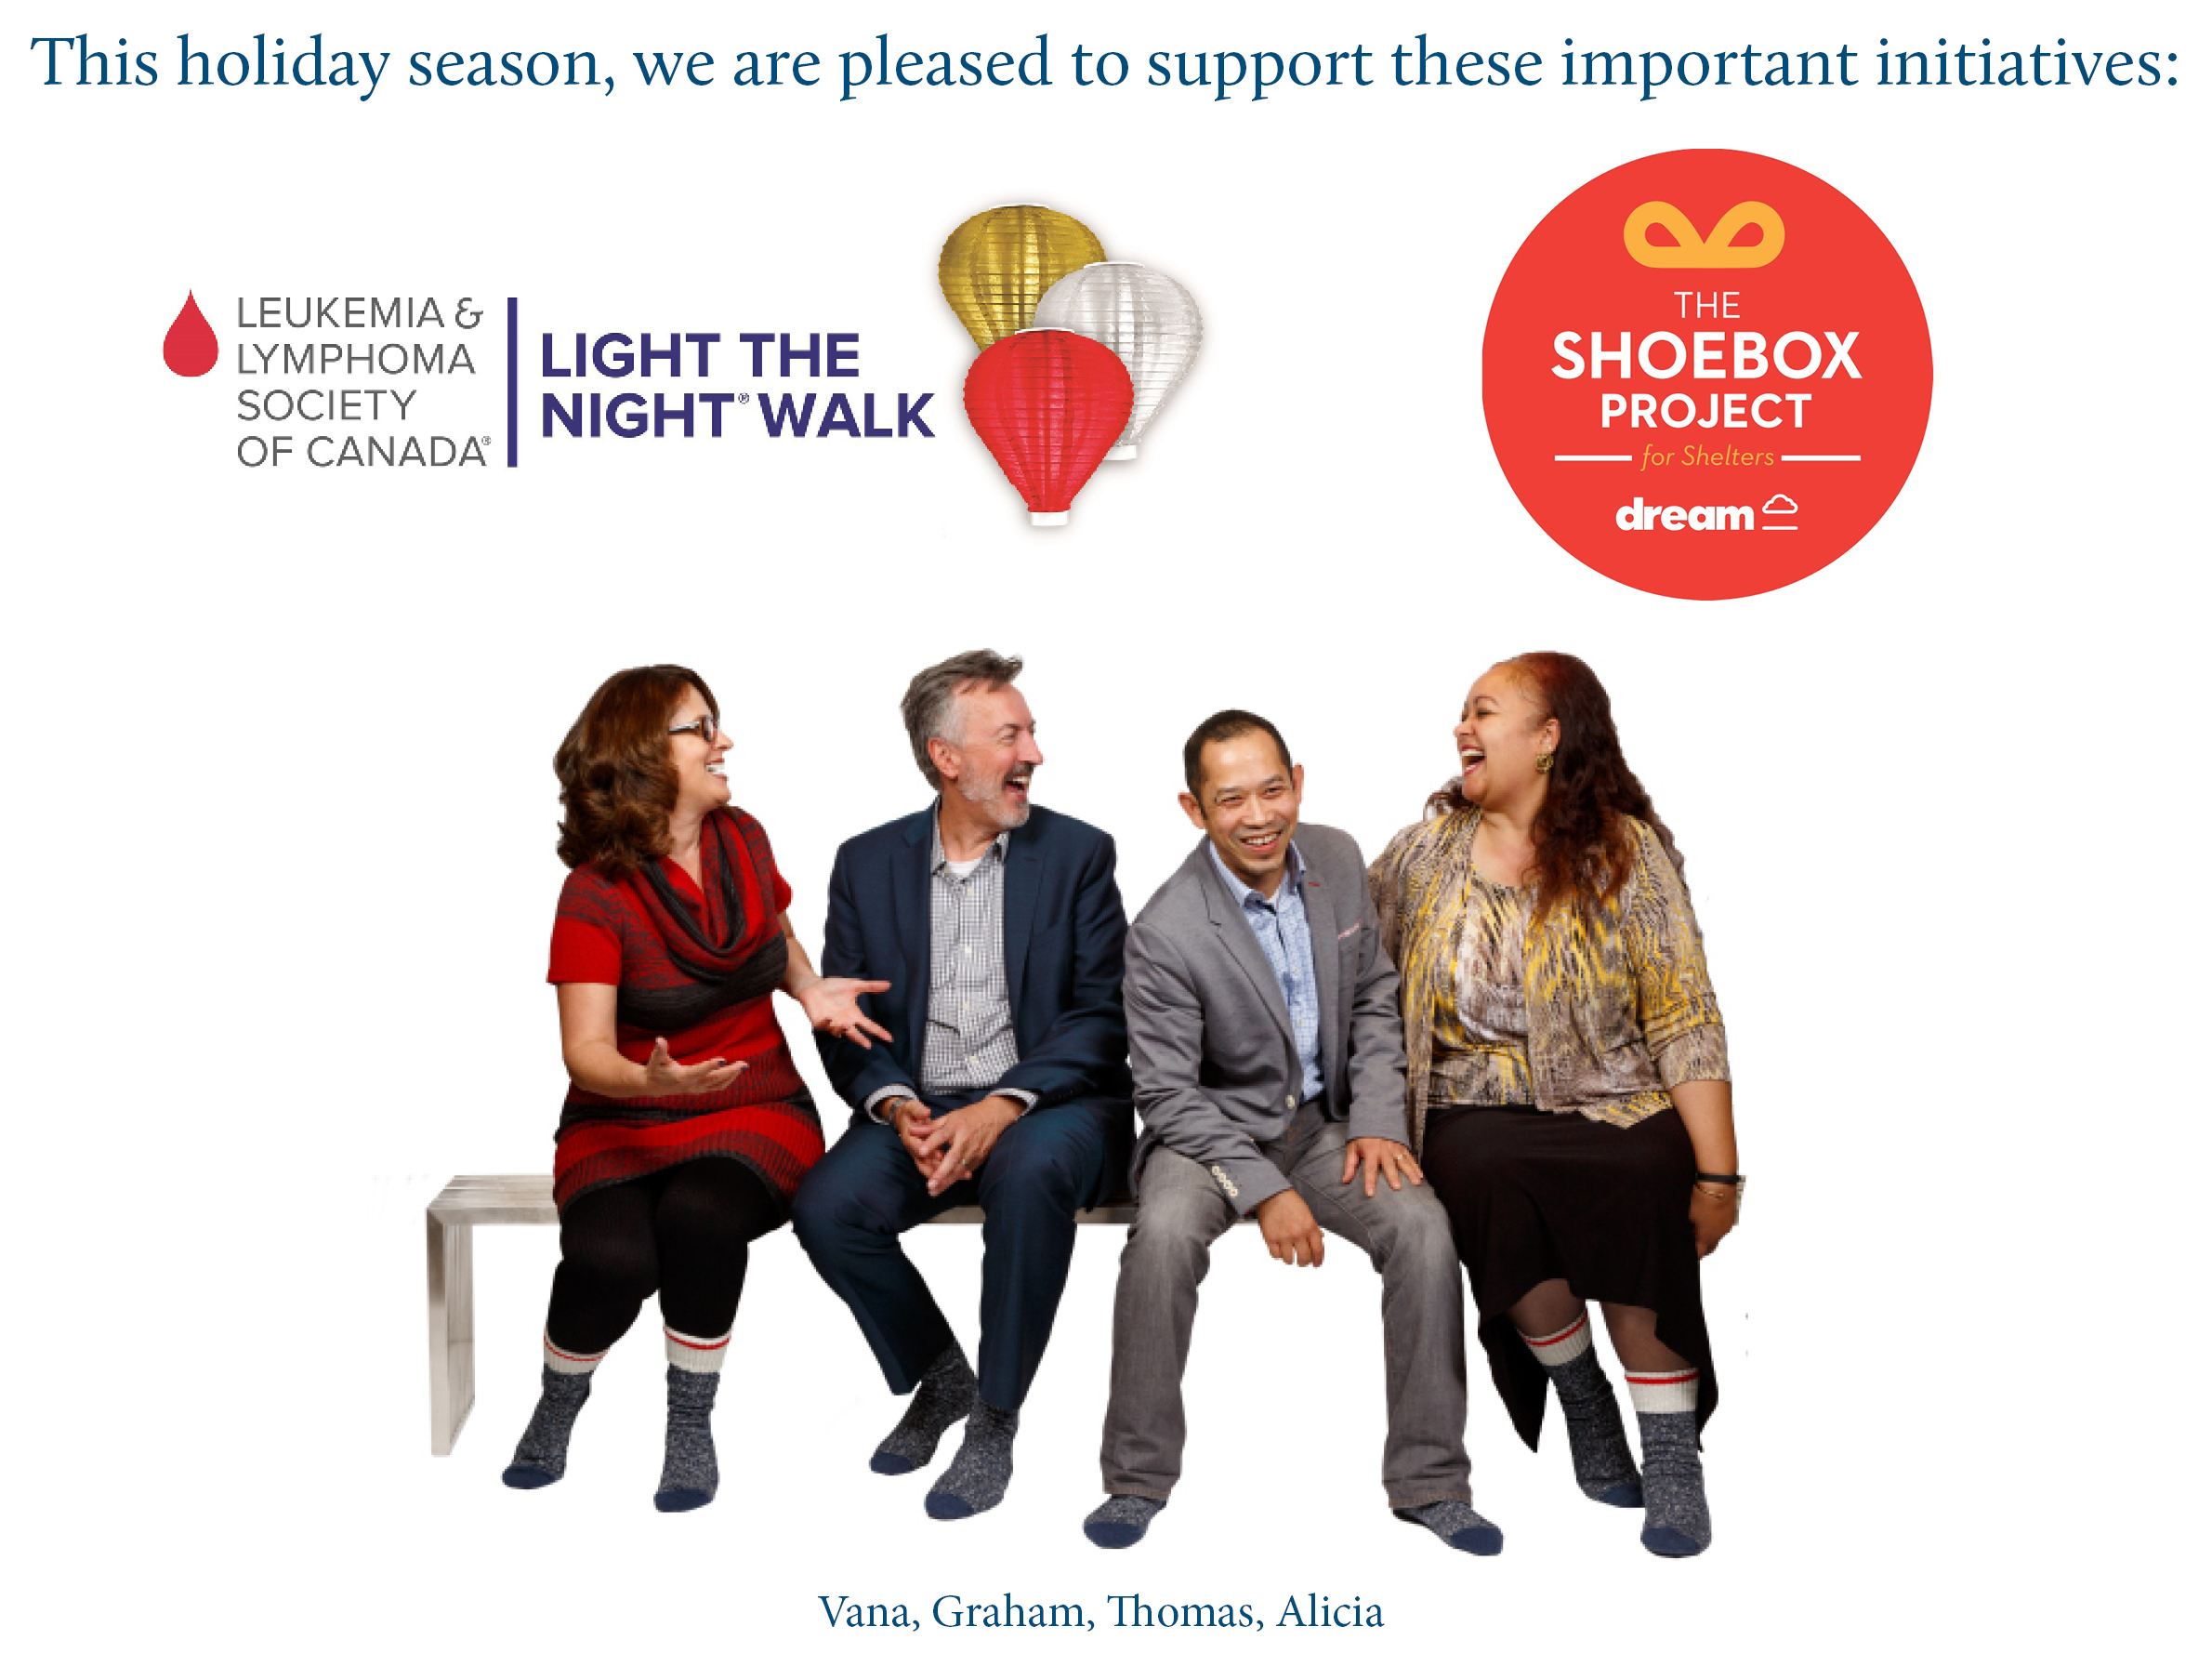 This year we are pleased to support these important initiatives: Light the Night Walk and the Shoebox Project